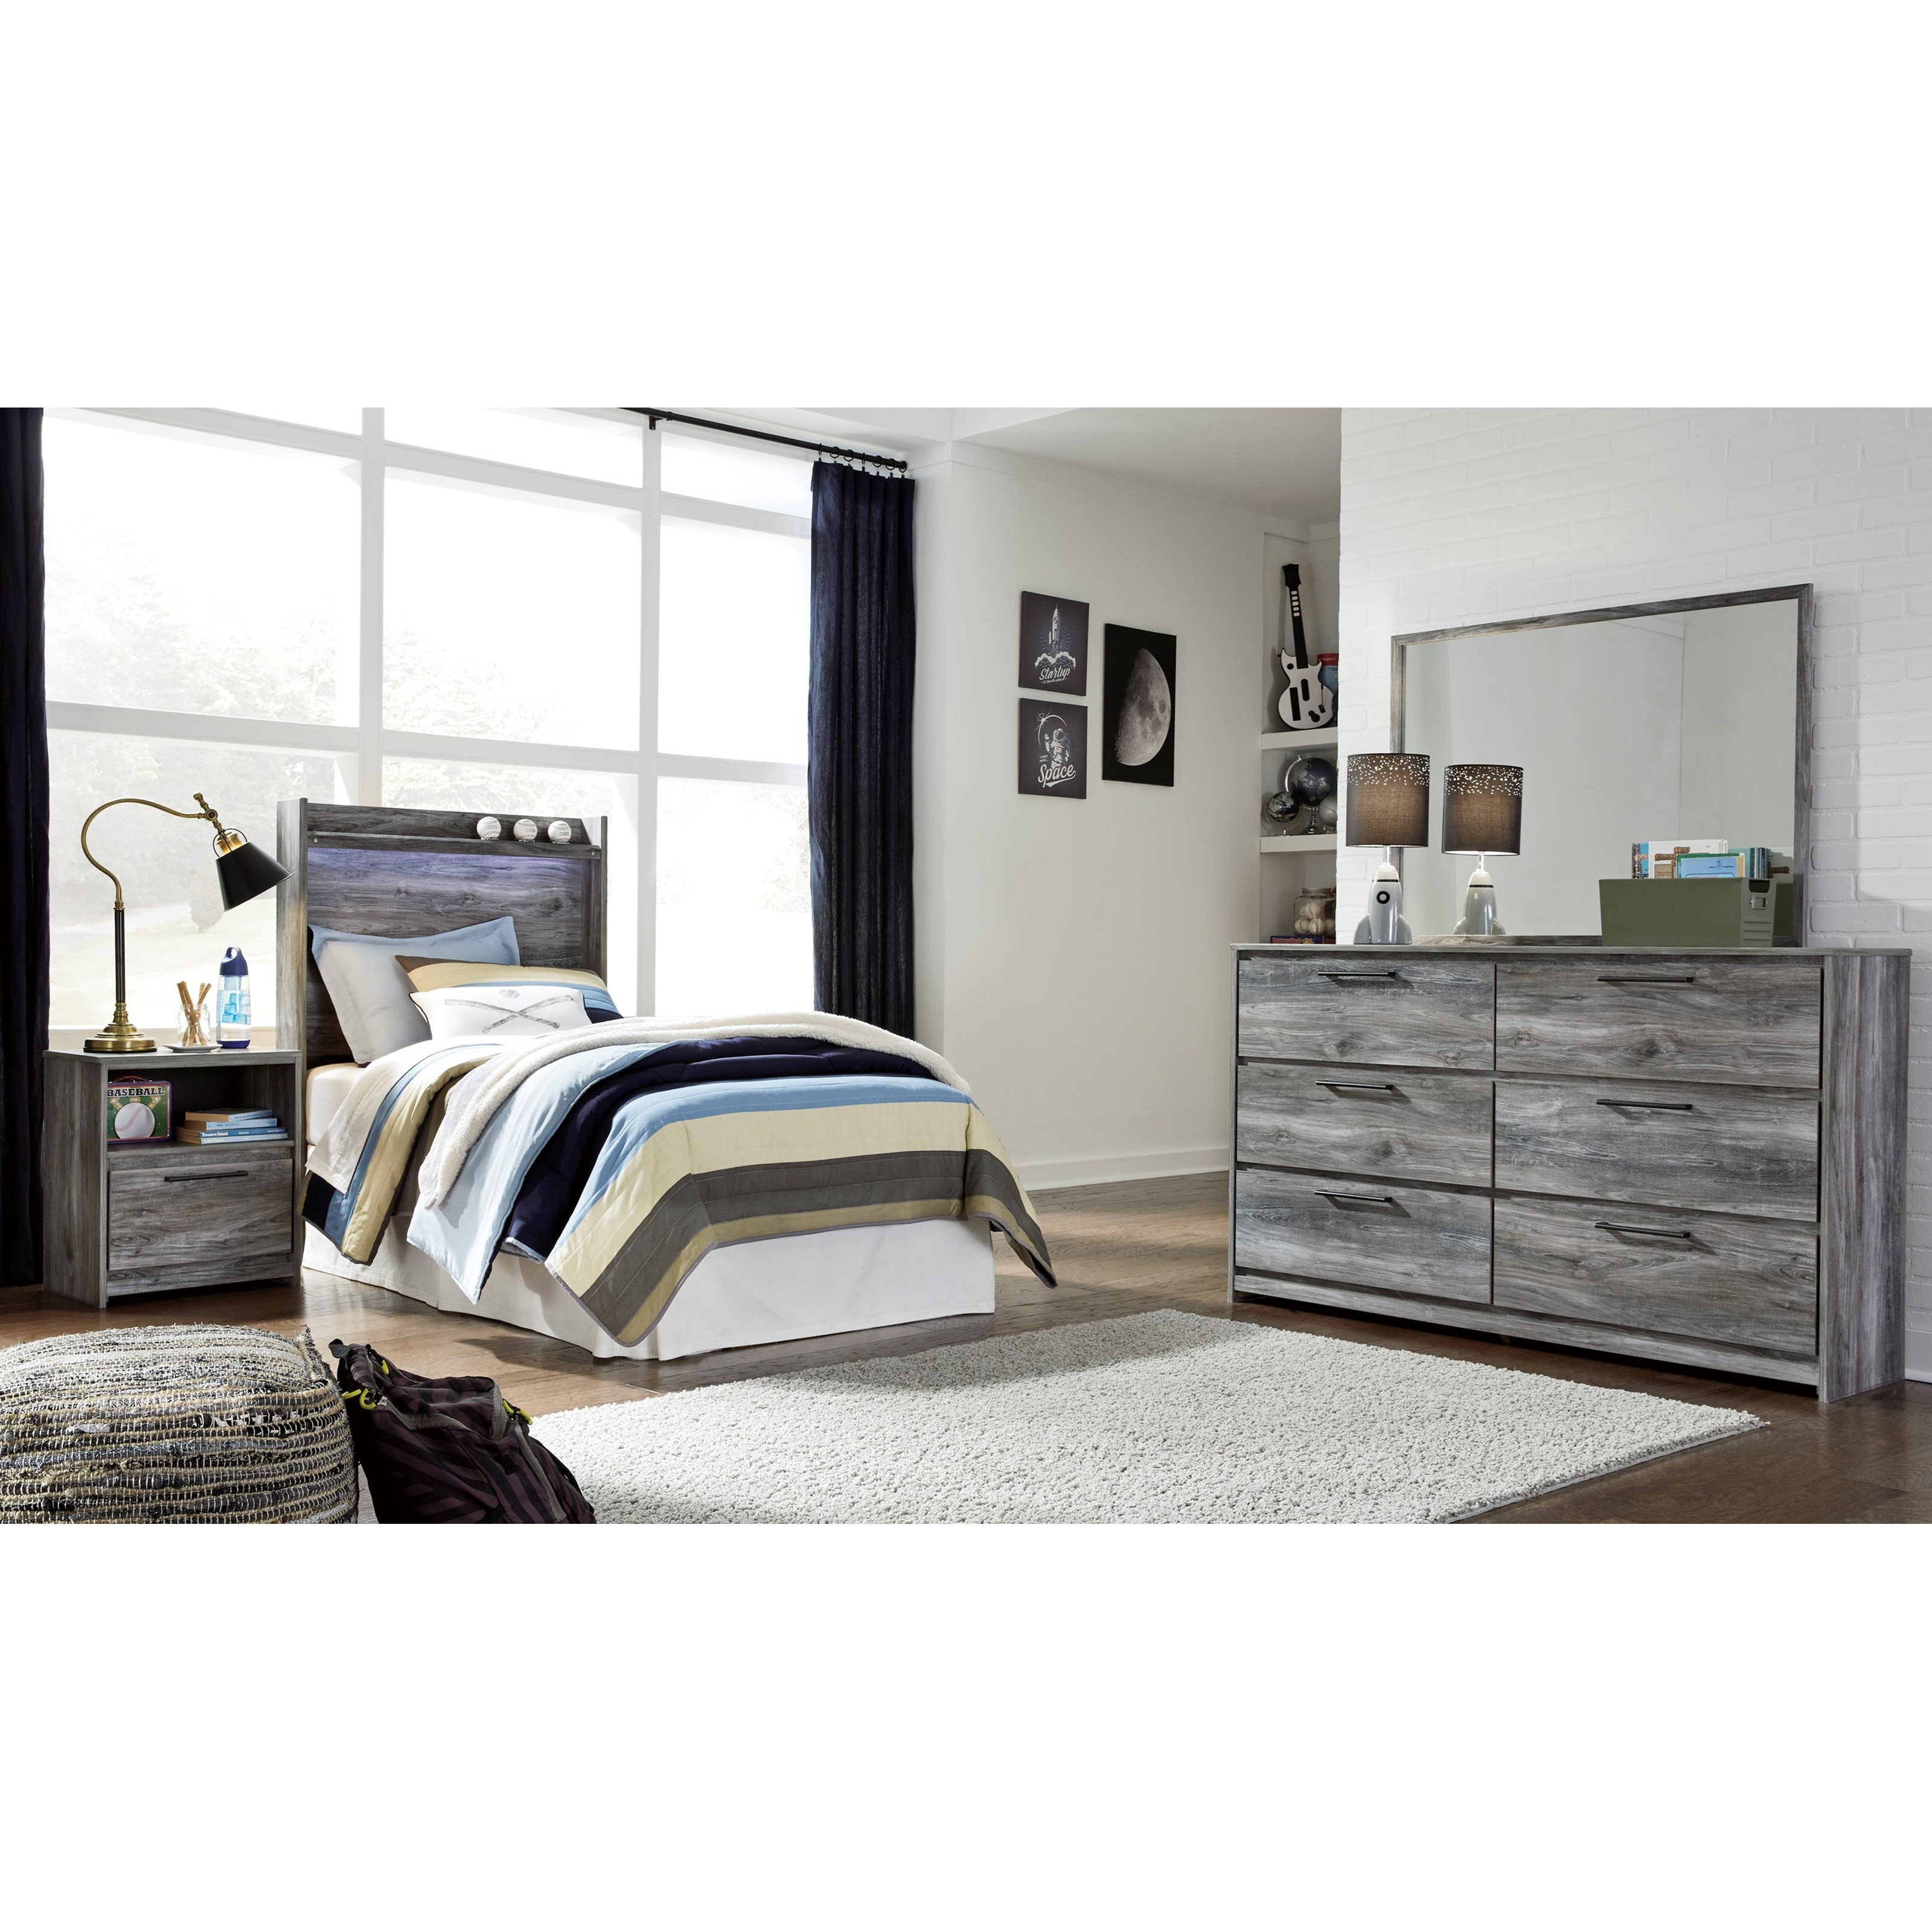 Baystorm Twin Bedroom Group by Signature Design by Ashley at Northeast Factory Direct